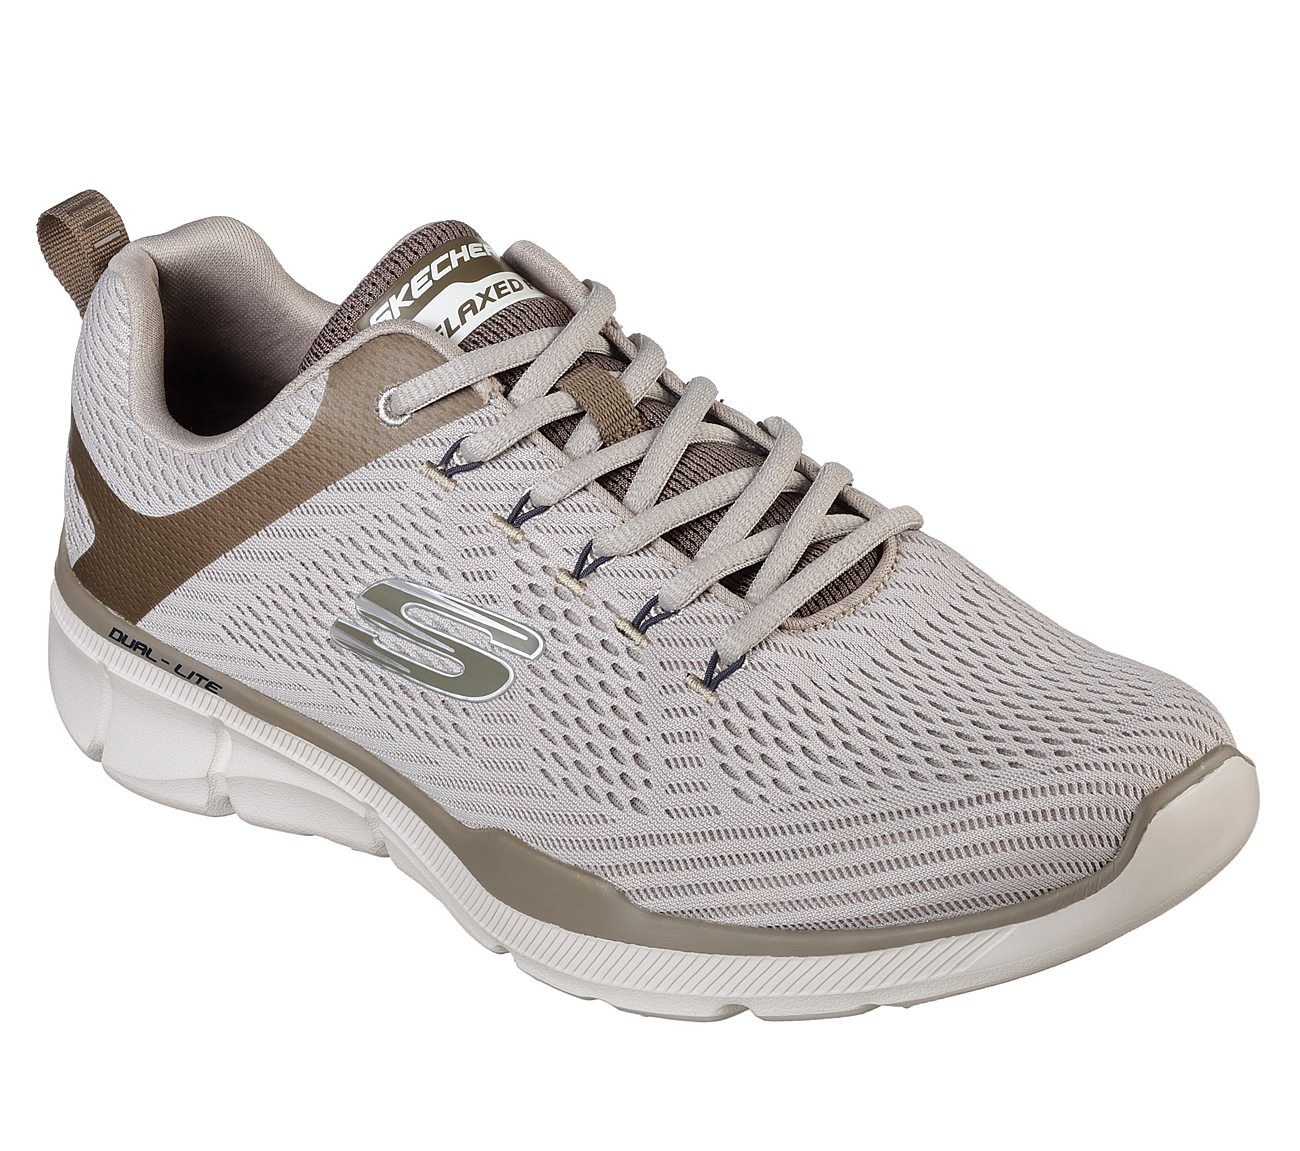 Buy SKECHERS Relaxed Fit: Equalizer 3.0